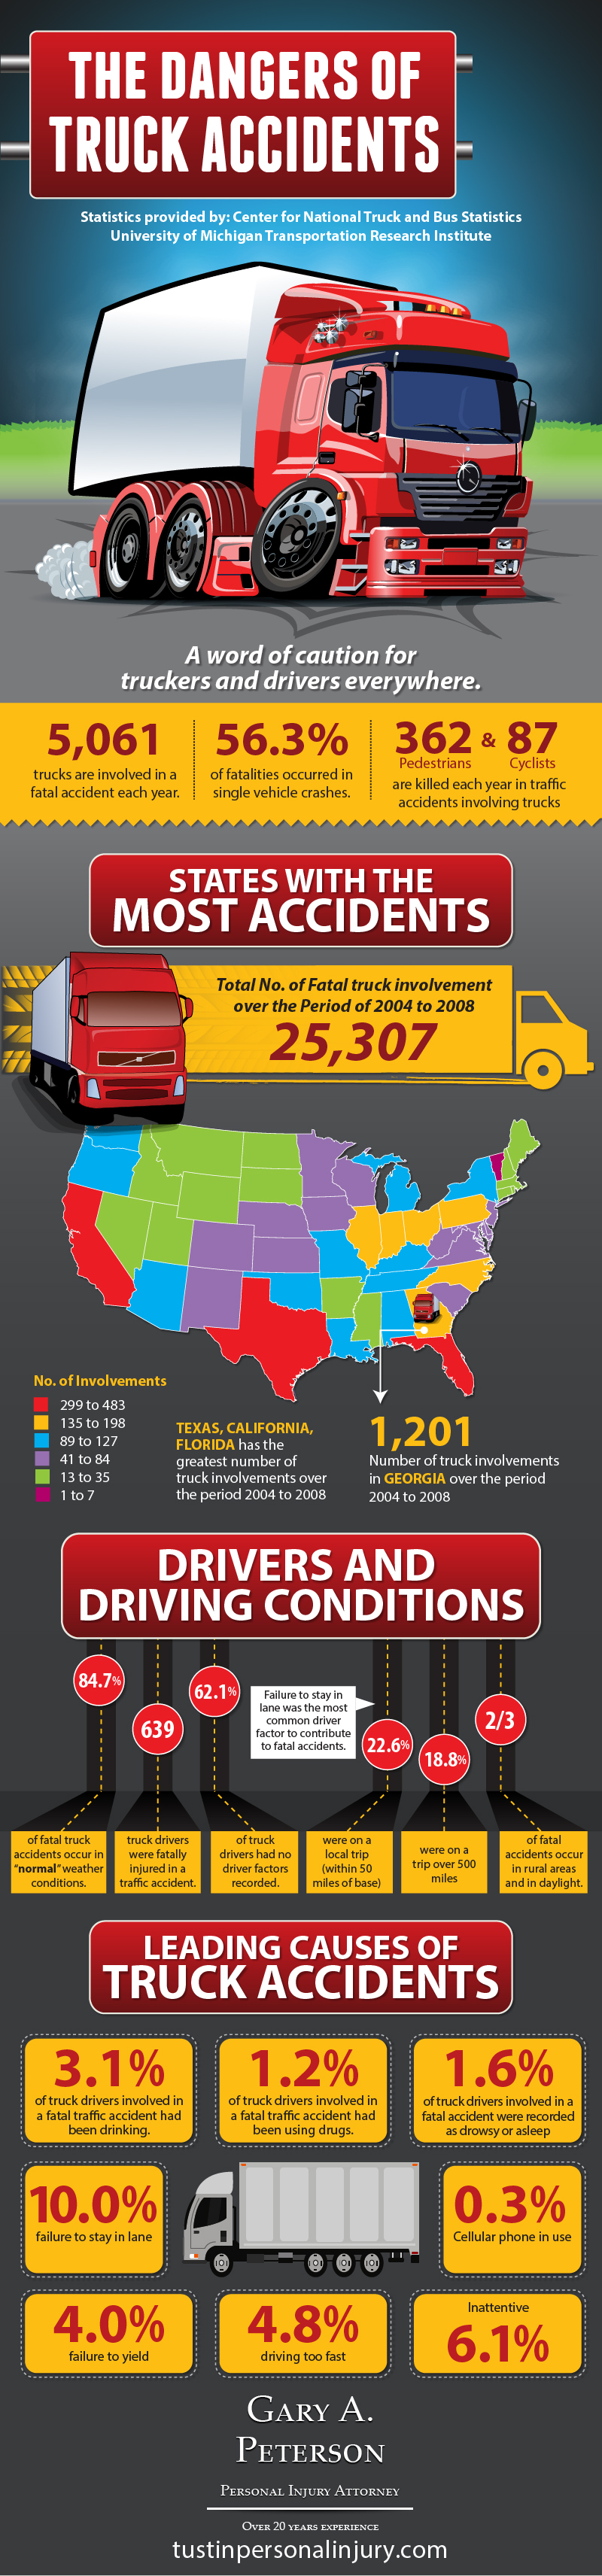 The Dangers of Truck Accidents